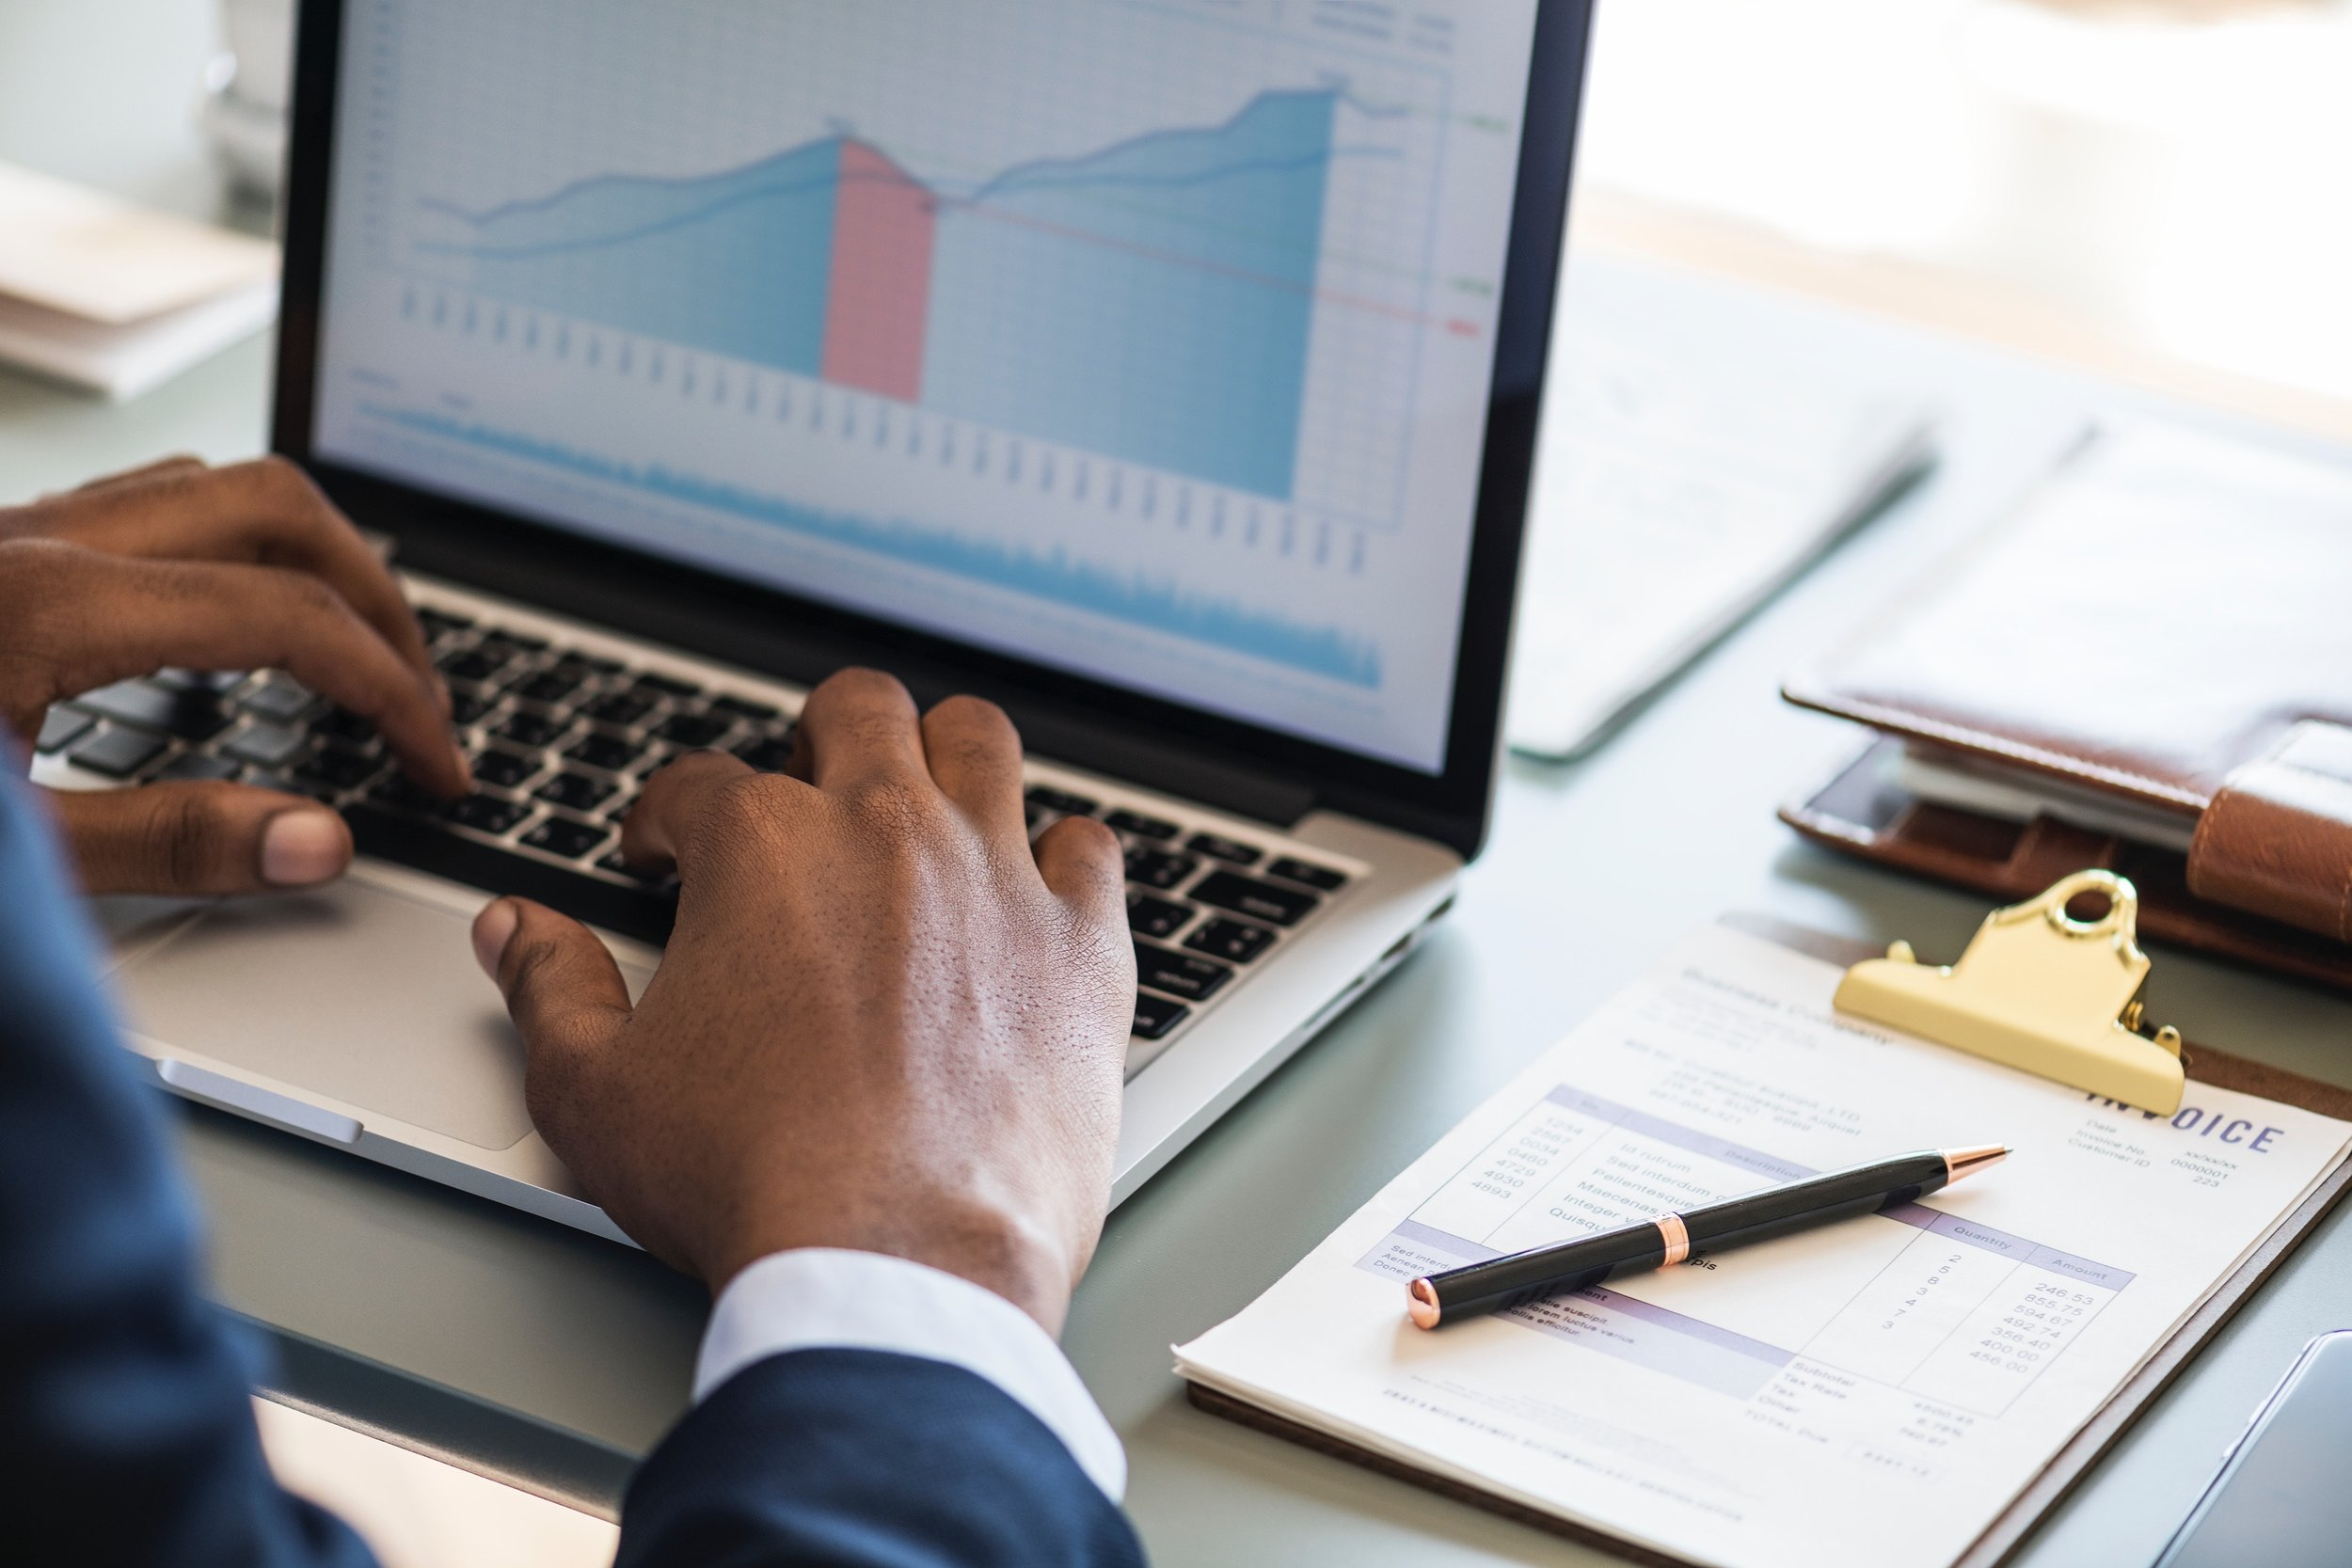 3 Tips for Scaling a Business - Check out our featured blog post about how to scale a business!